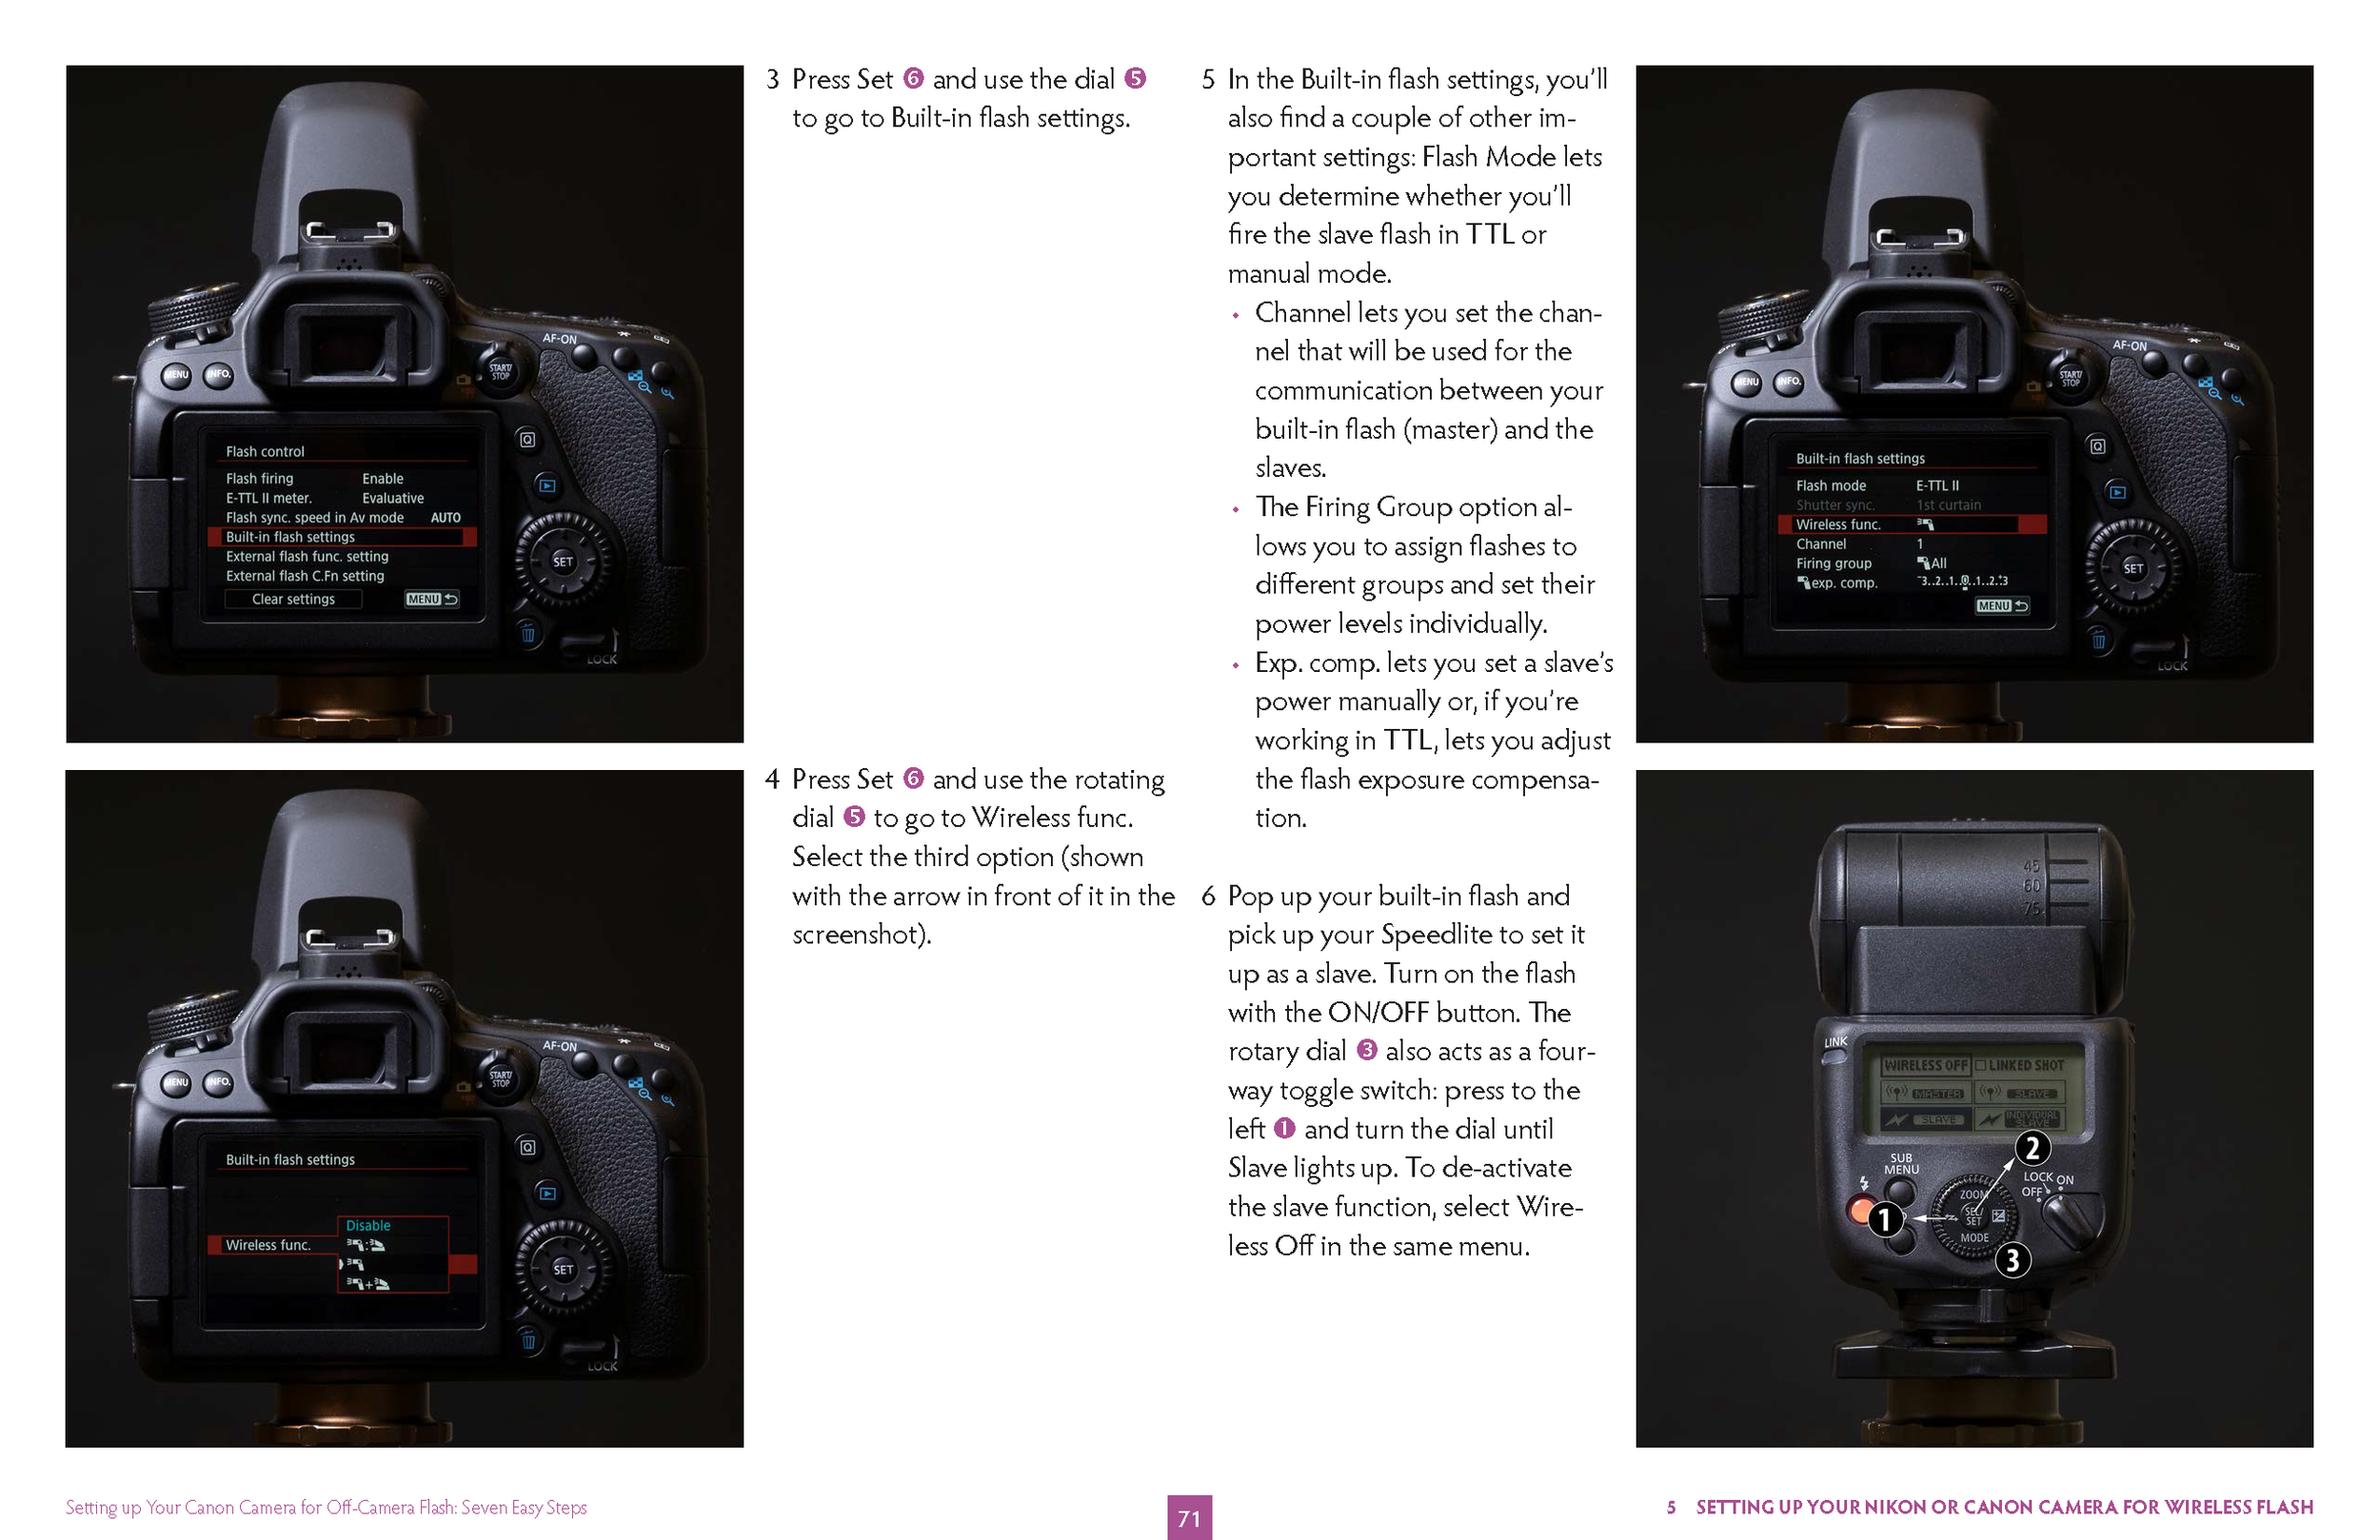 5 Reasons The Roboshoot X Flash Triggers For Fuji Are A Game Changer Tiny Efficient High Power Led Camera Solutions Cell Phone Lightitup 2018 0314 Revpiet Page 071